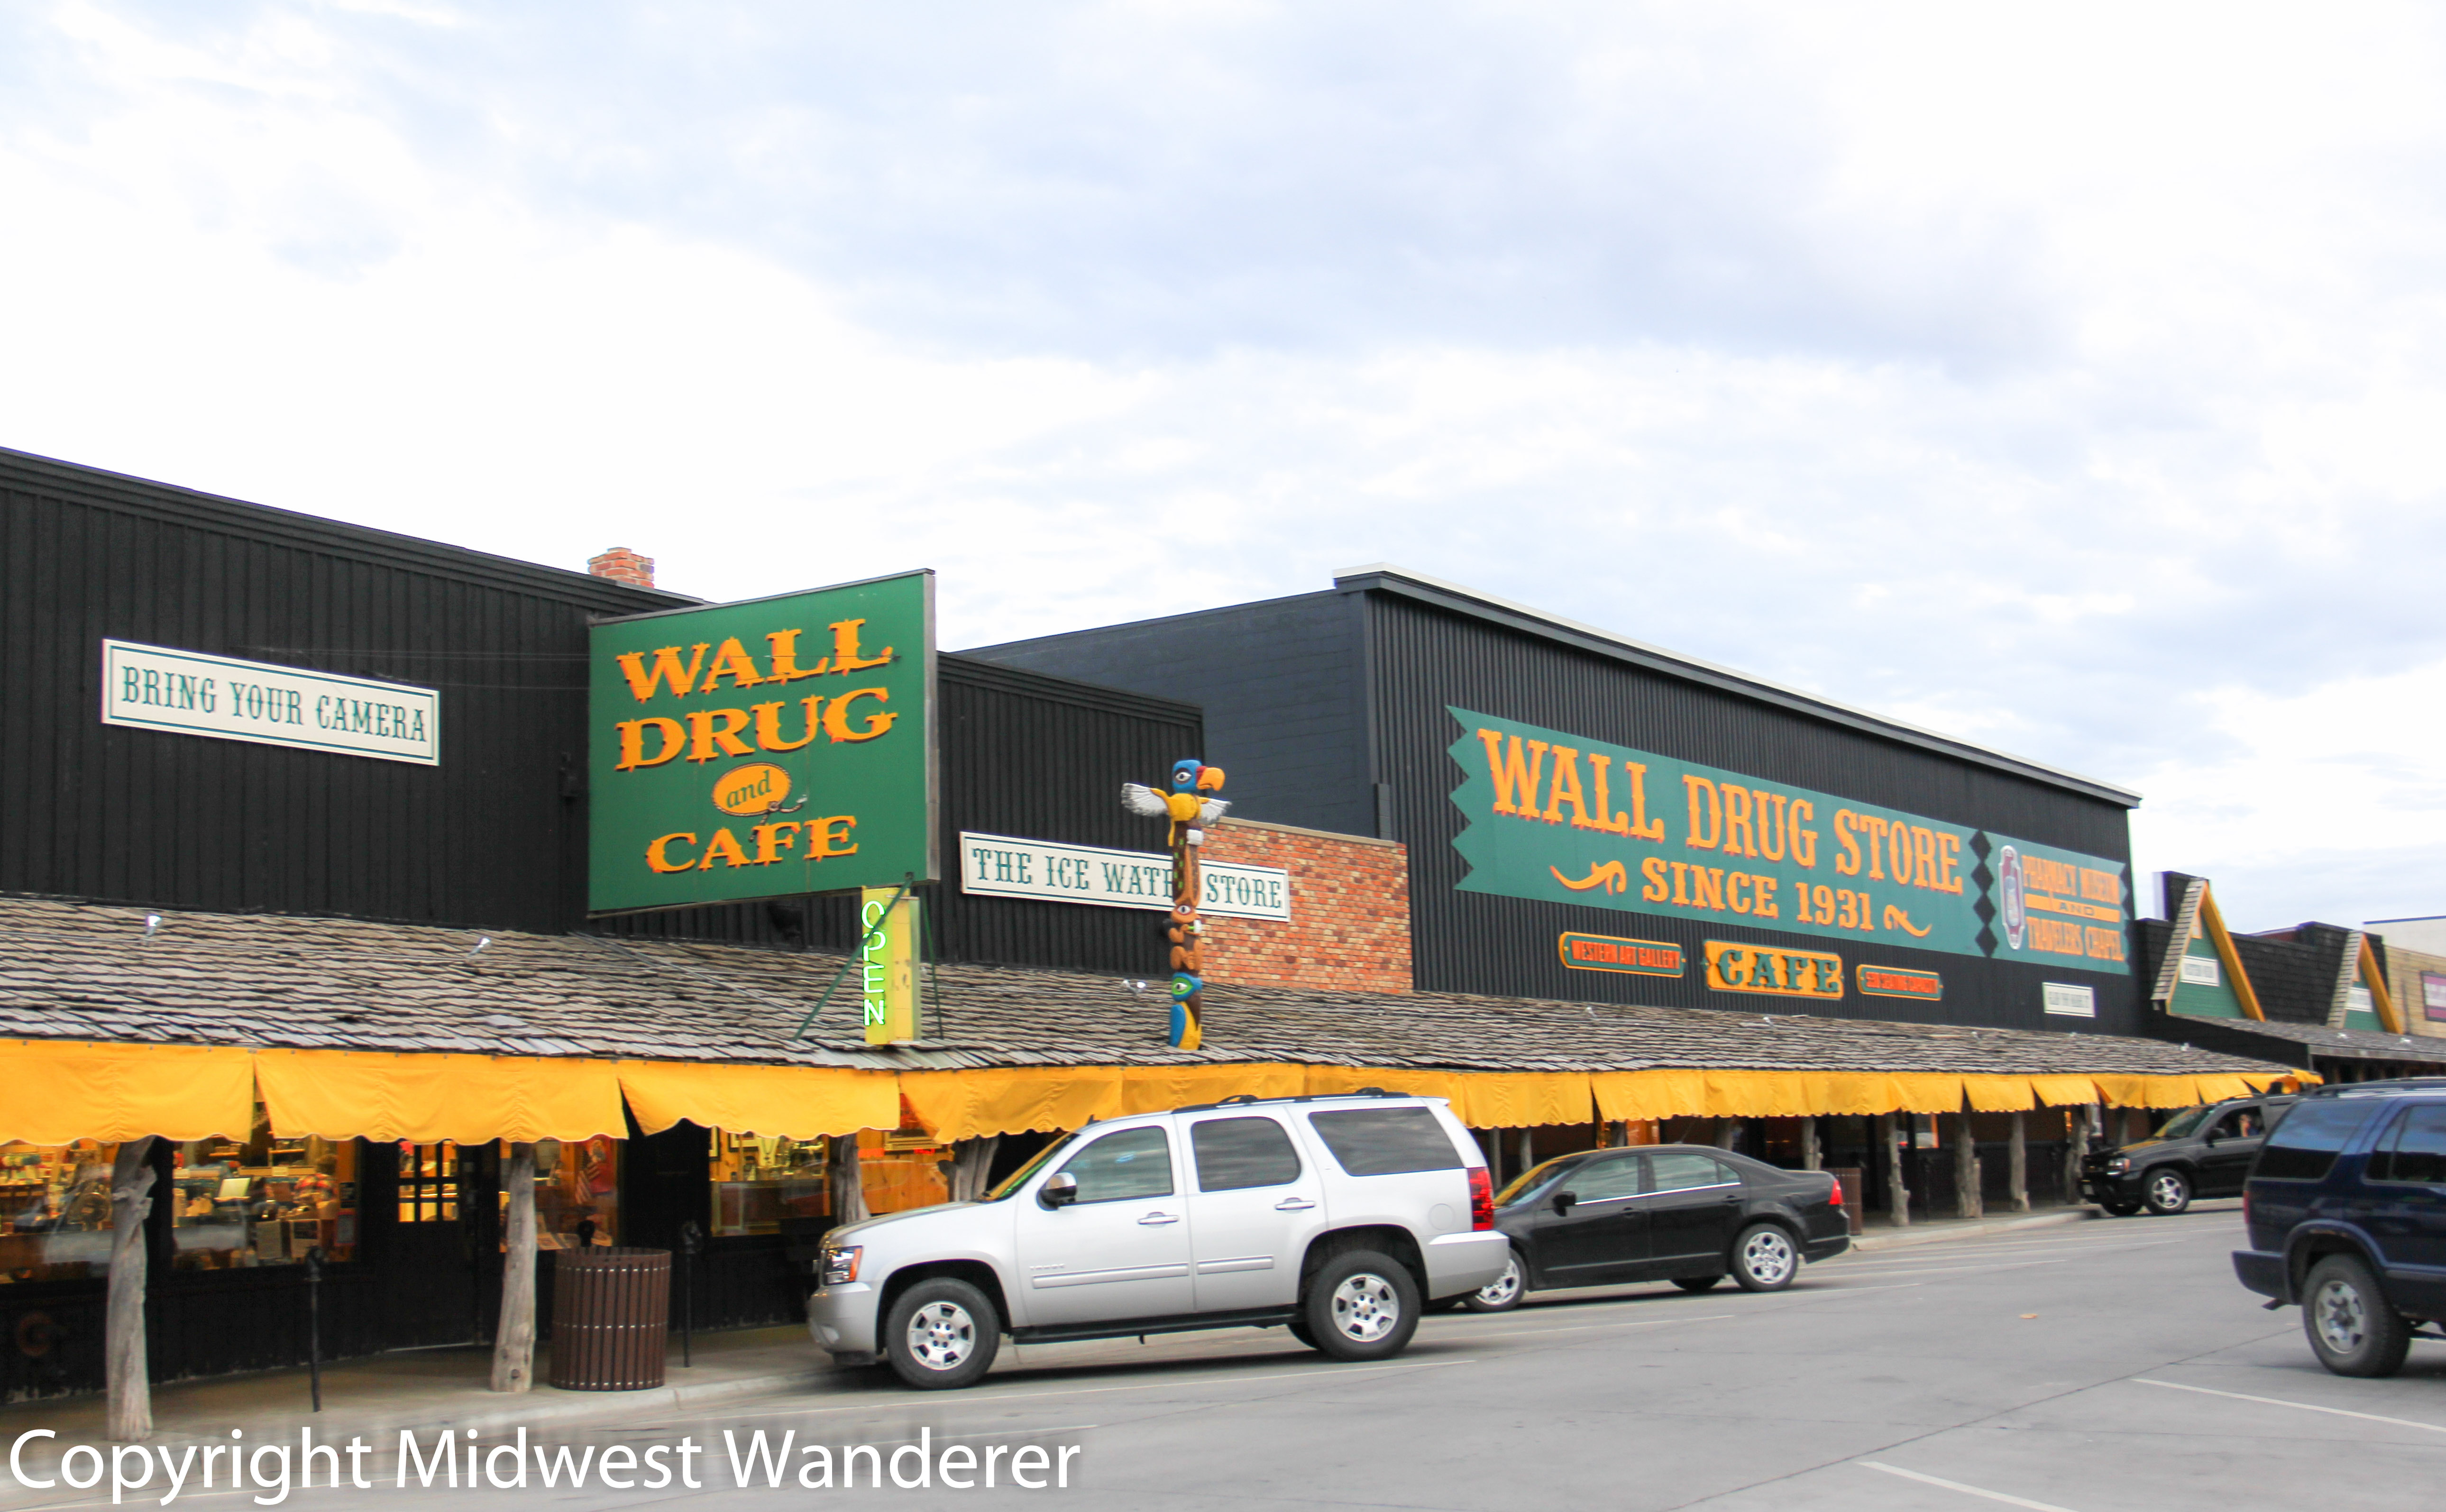 Wall Drug: From Free Ice Water to Free Fun